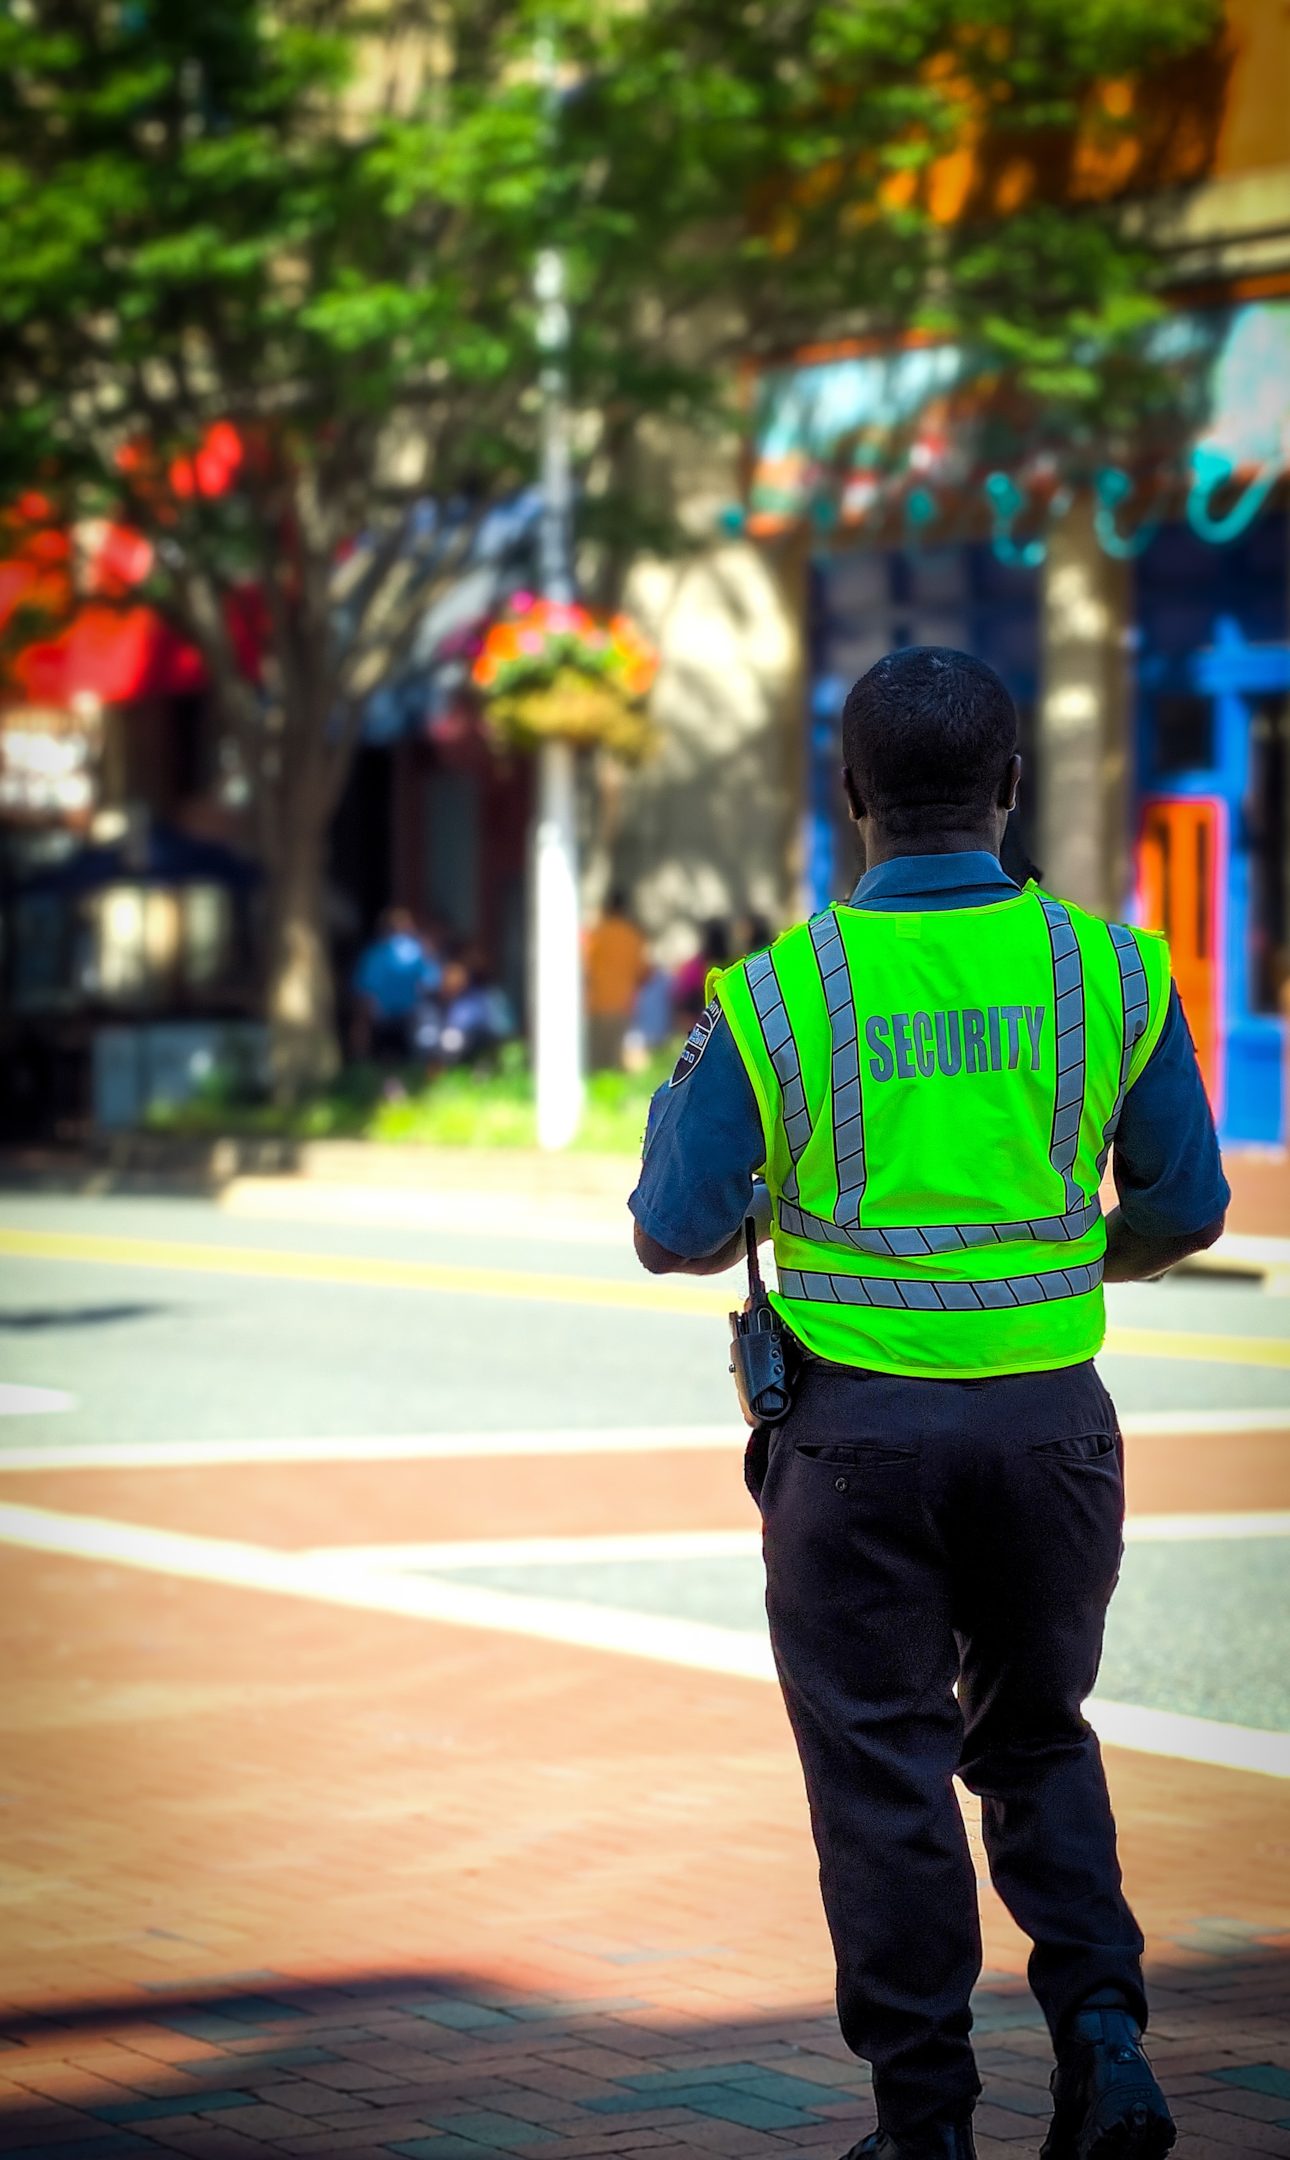 (Source: unsplash.com/@thenewmalcolm) Security Guard in a neon green vest watches over a 4way intersection